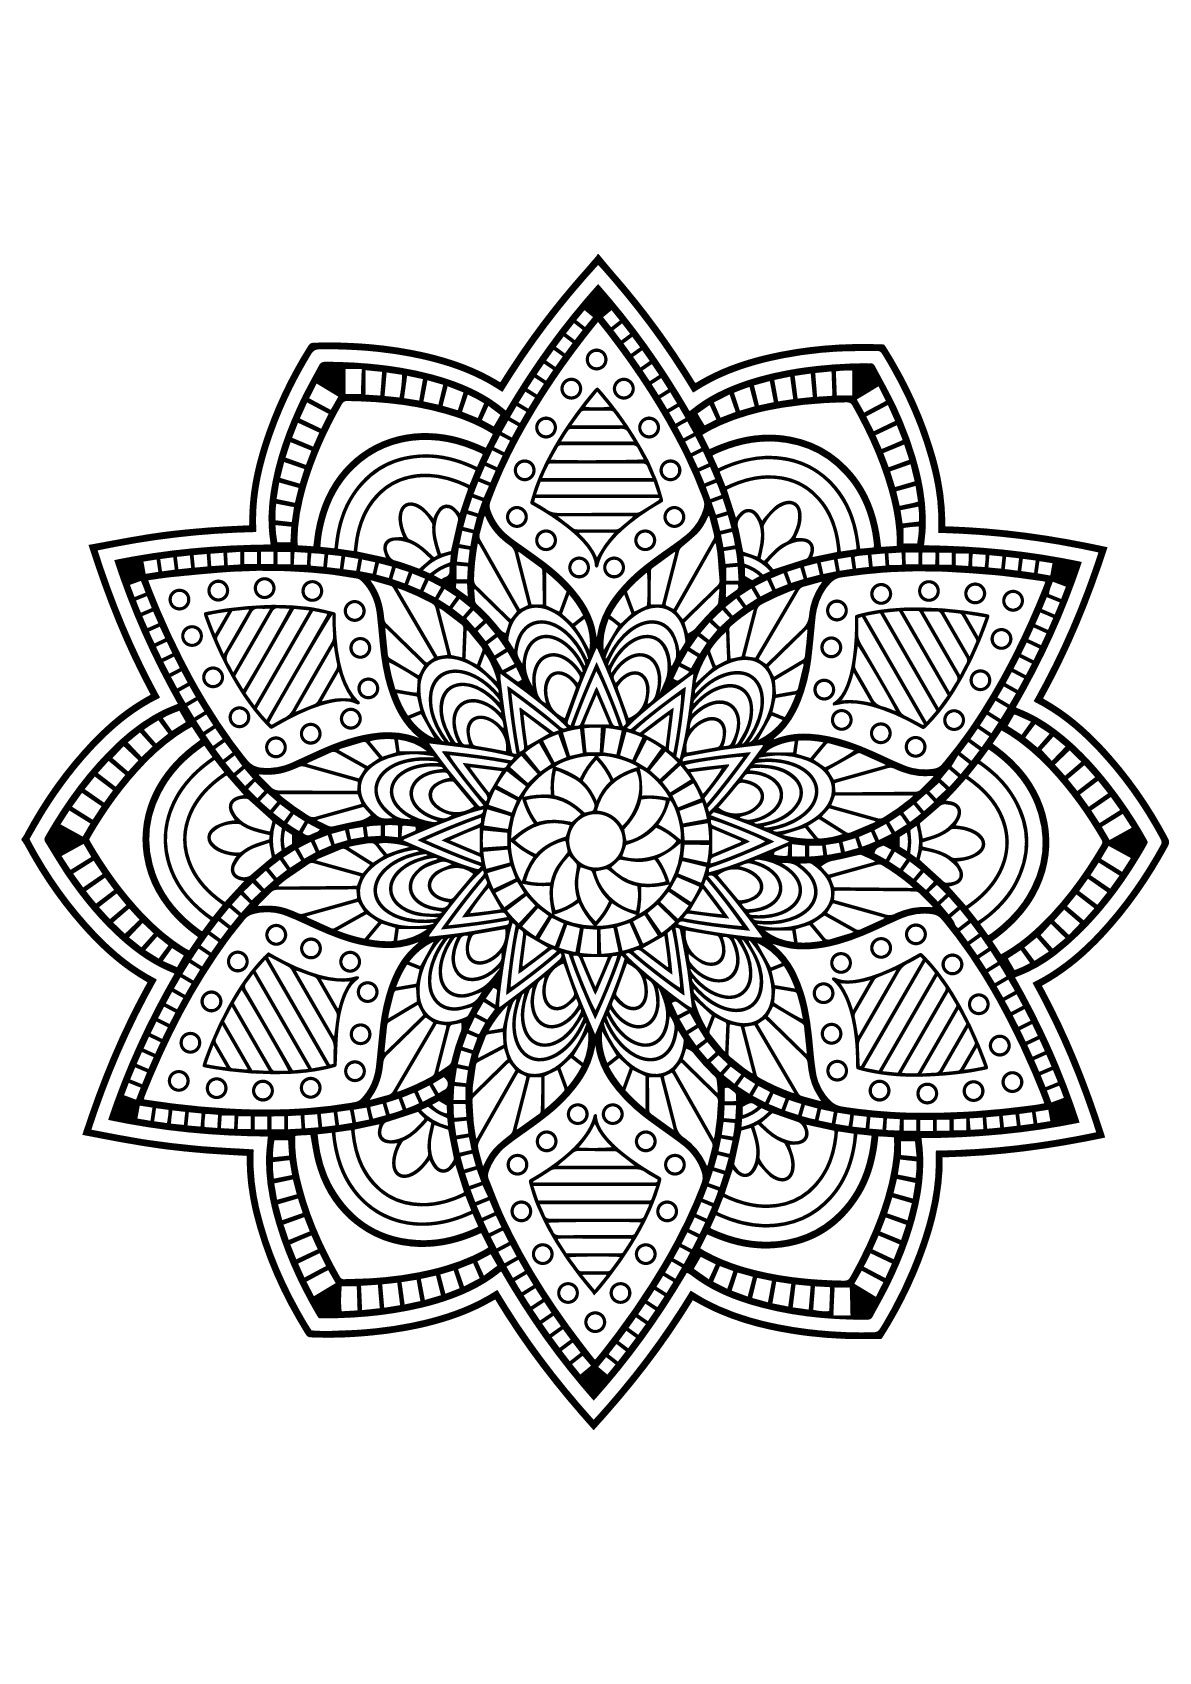 Here Are Difficult Mandalas Coloring Pages For Adults To Print For Free Mandala Is A Sanskrit Word Mandala Coloring Pages Mandala Coloring Free Coloring Pages